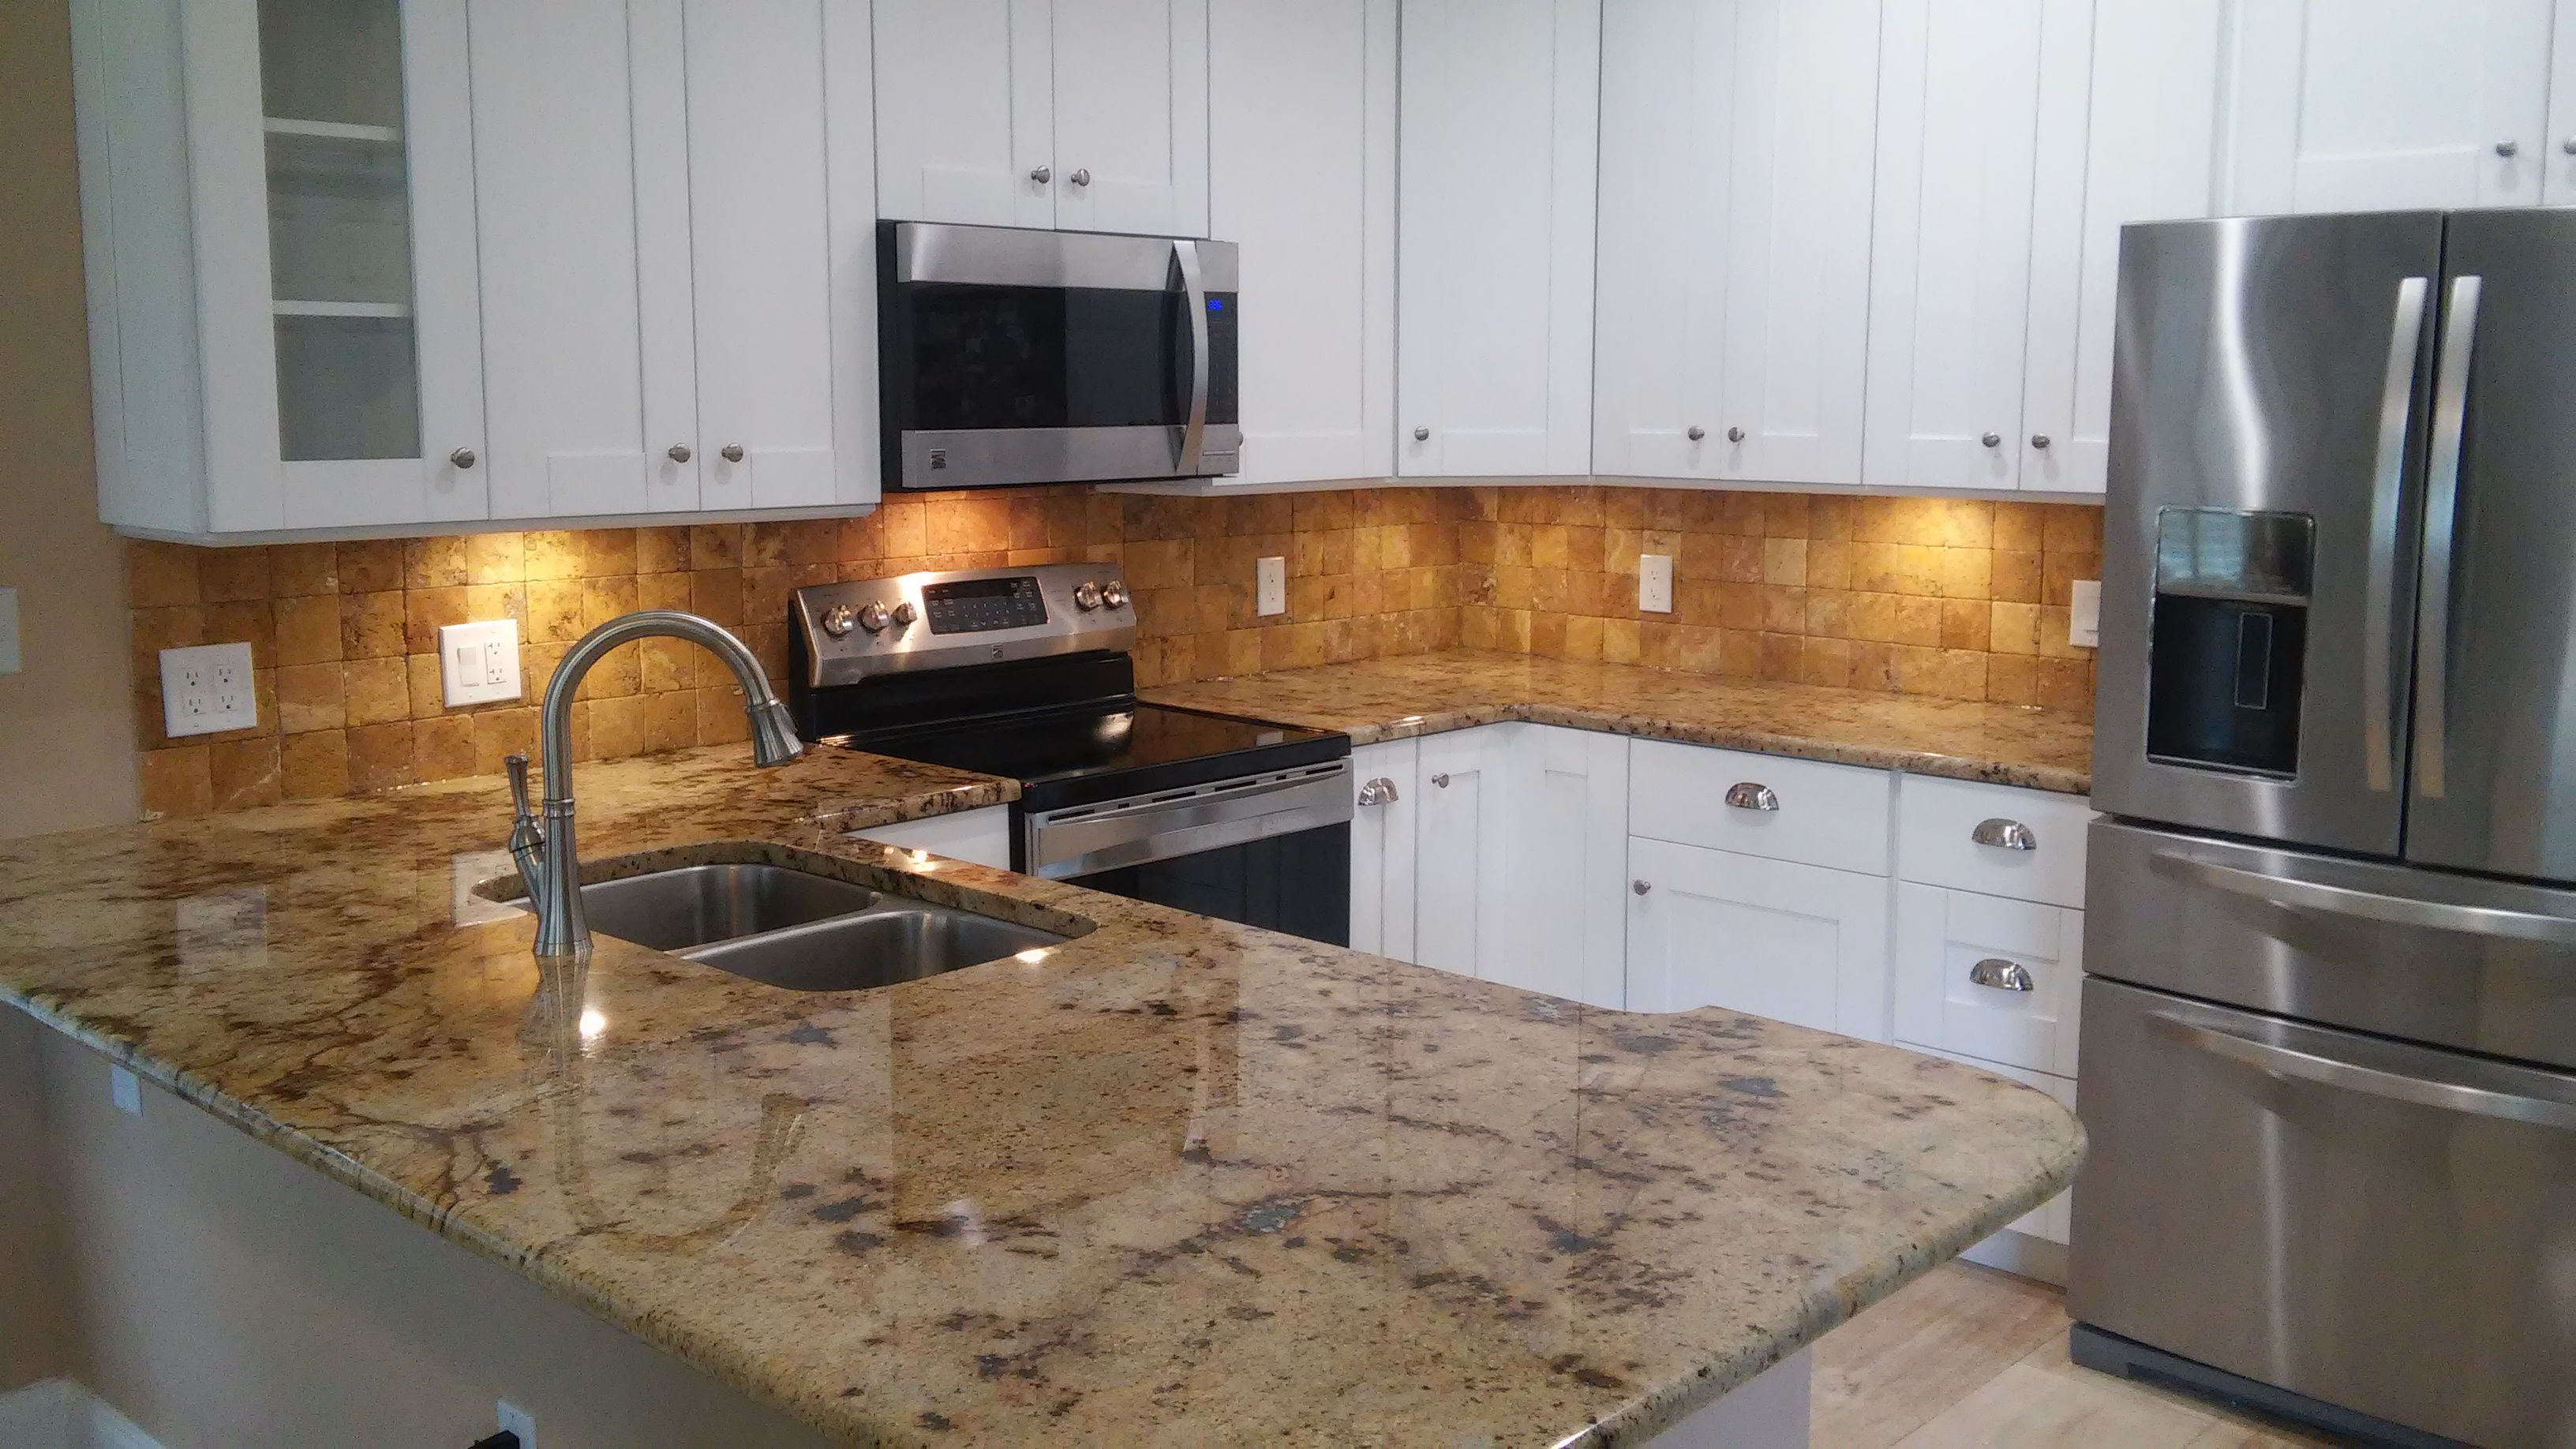 canelliremodeling kitchen remodeling tampa We service residential homes commercial buildings apartments condos and various buildings throughout the entire region including Brandon Valrico